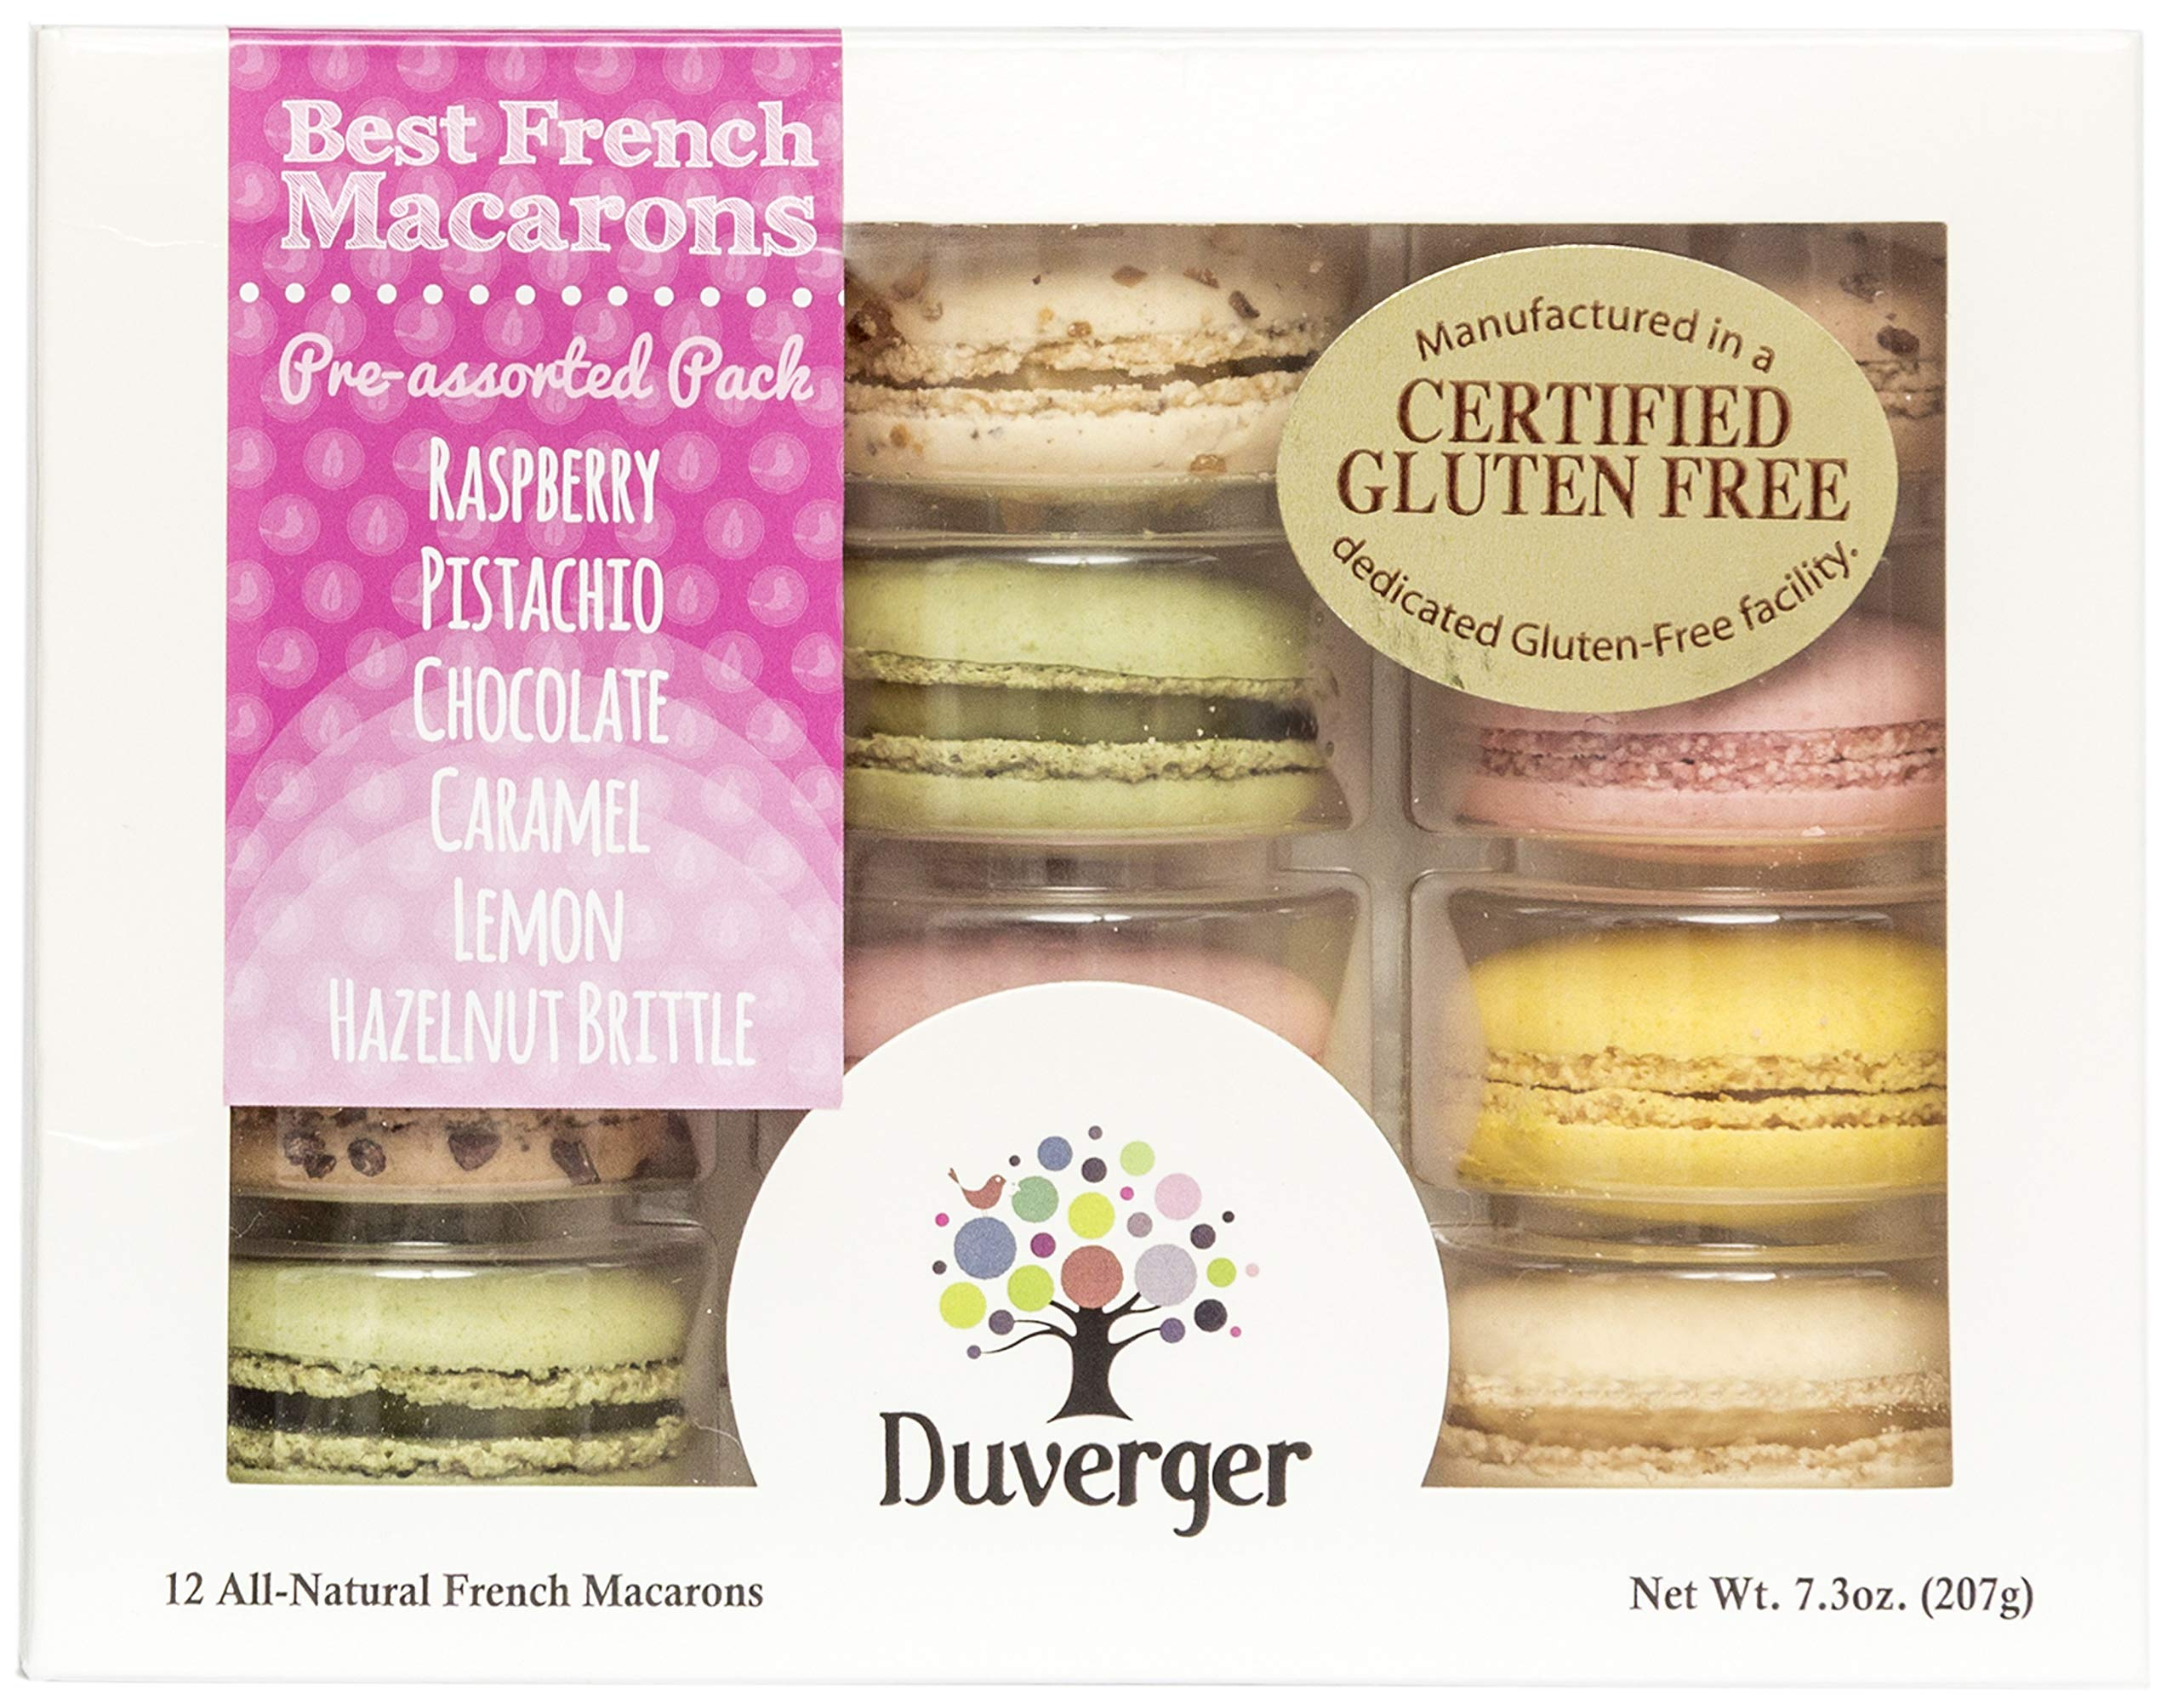 Duverger French Macarons Degustation Pack - Gluten Free Certified (12 count)